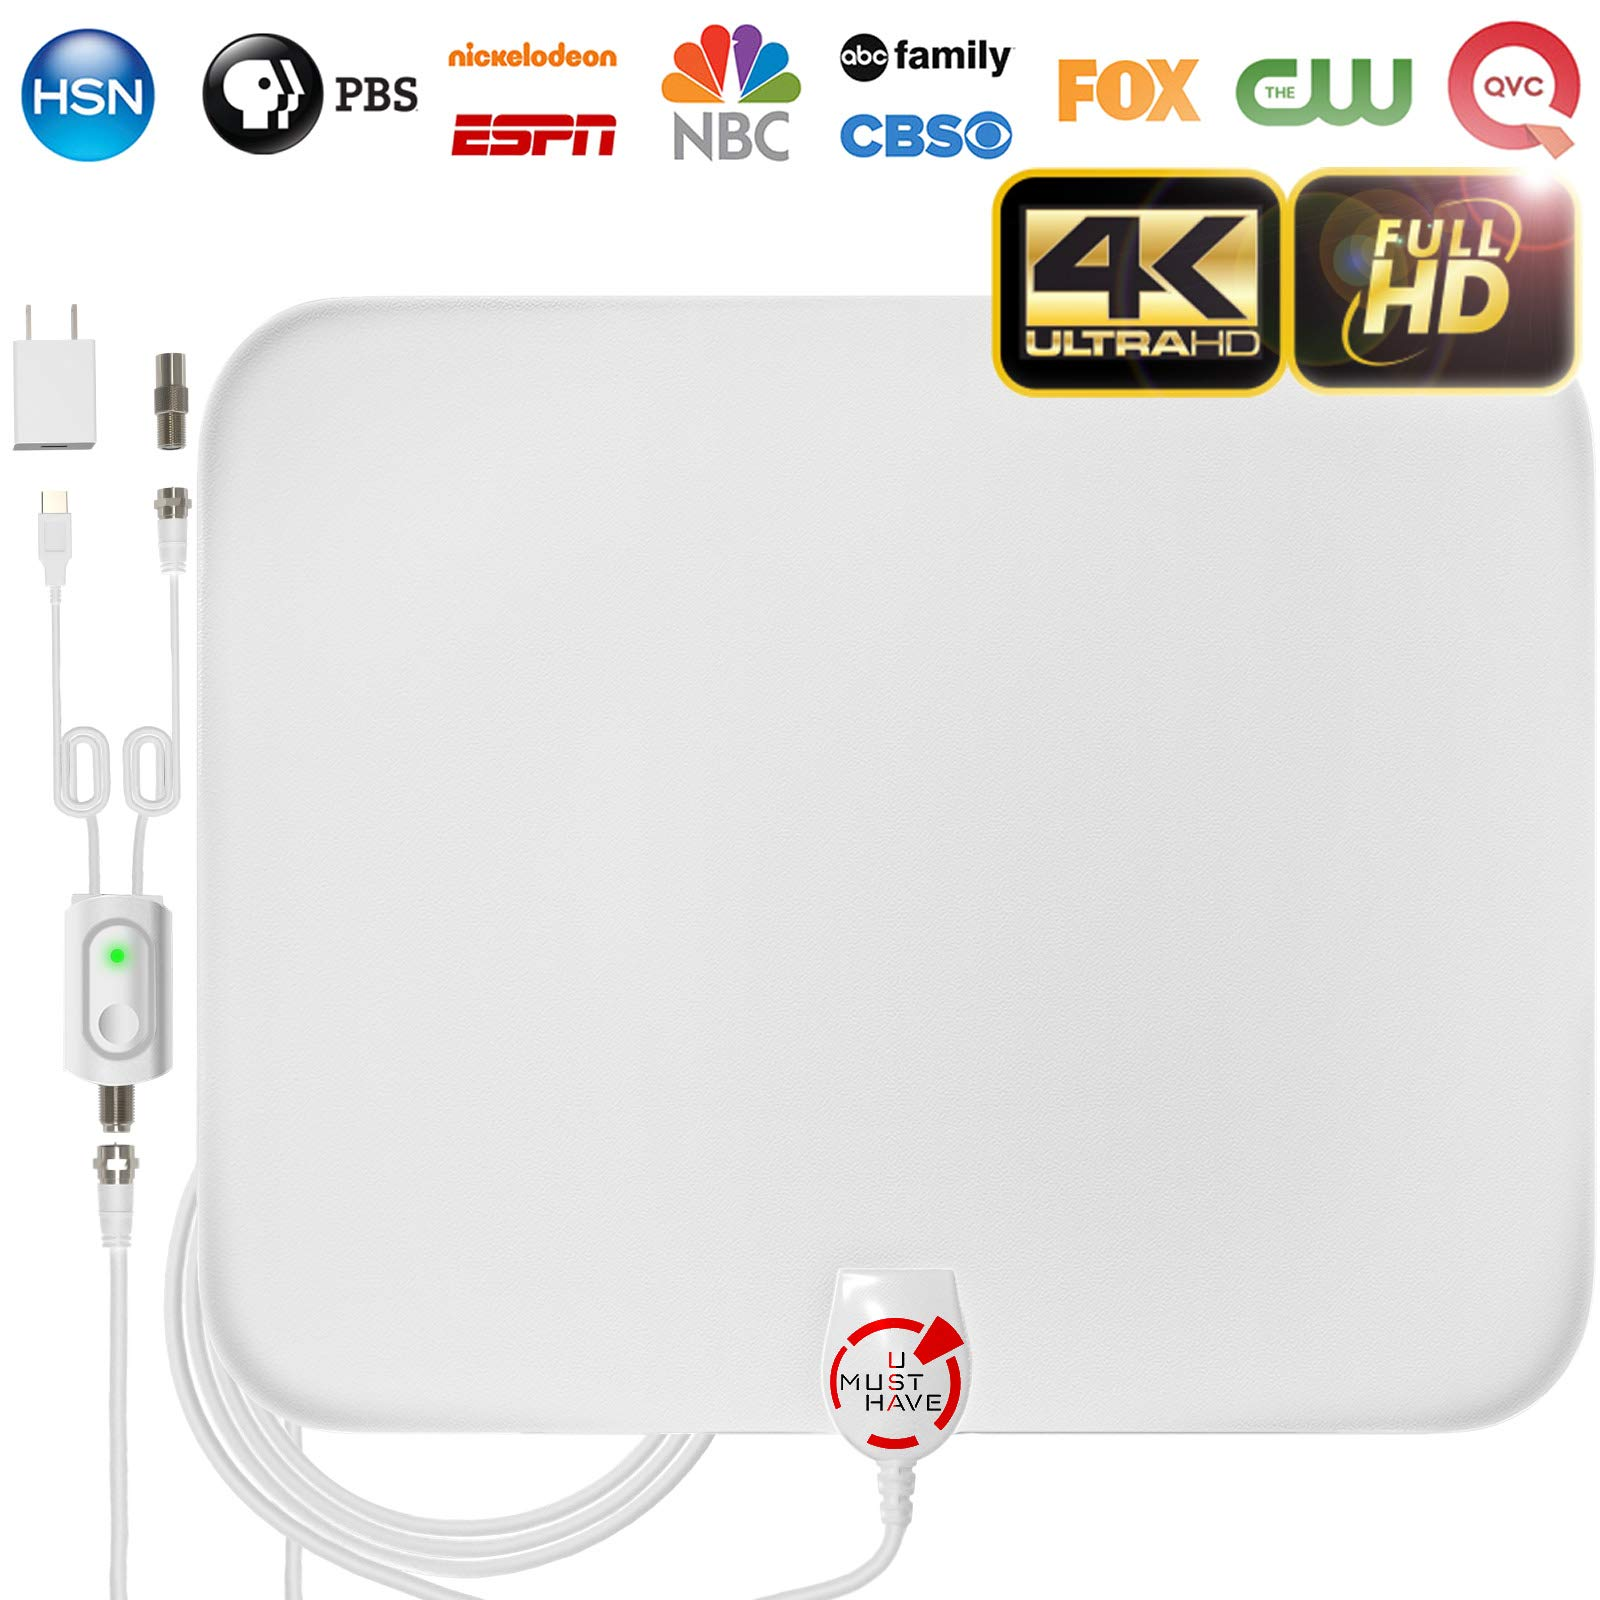 [Latest 2018] Amplified HD Digital TV Antenna Long 65-80 Miles Range – Support 4K 1080p and All Older TV's Indoor Powerful HDTV Amplifier Signal Booster - 18ft Coax Cable/AC Adapter